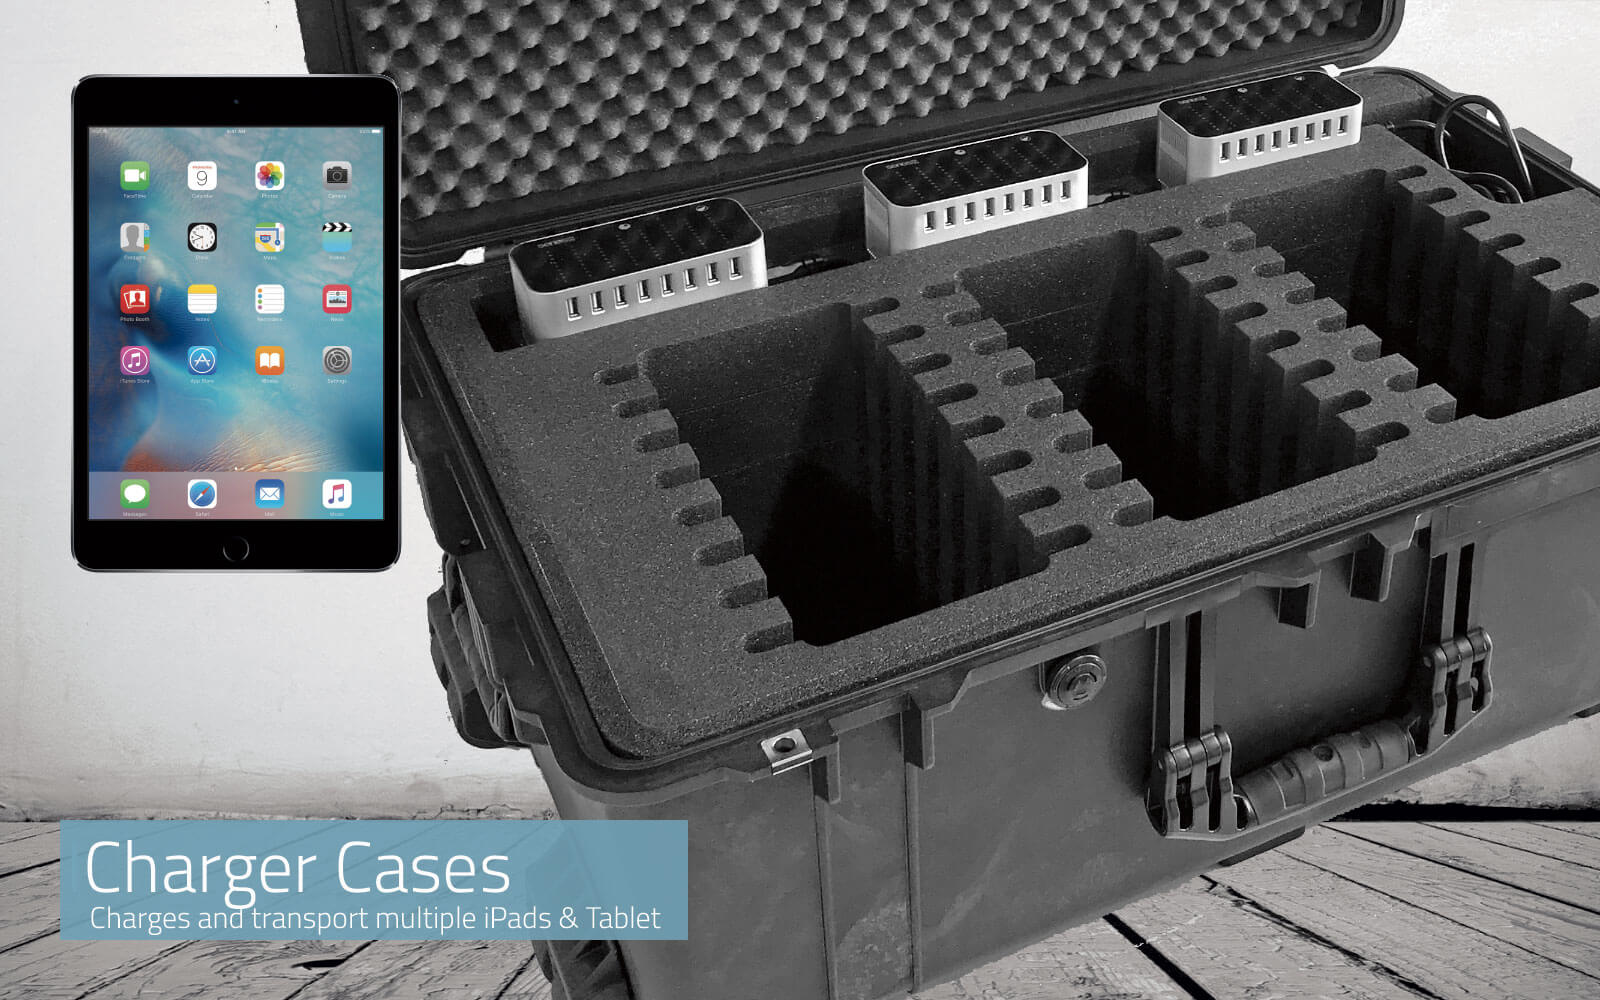 Transport, charge and protect multiple iPads & Tablets.